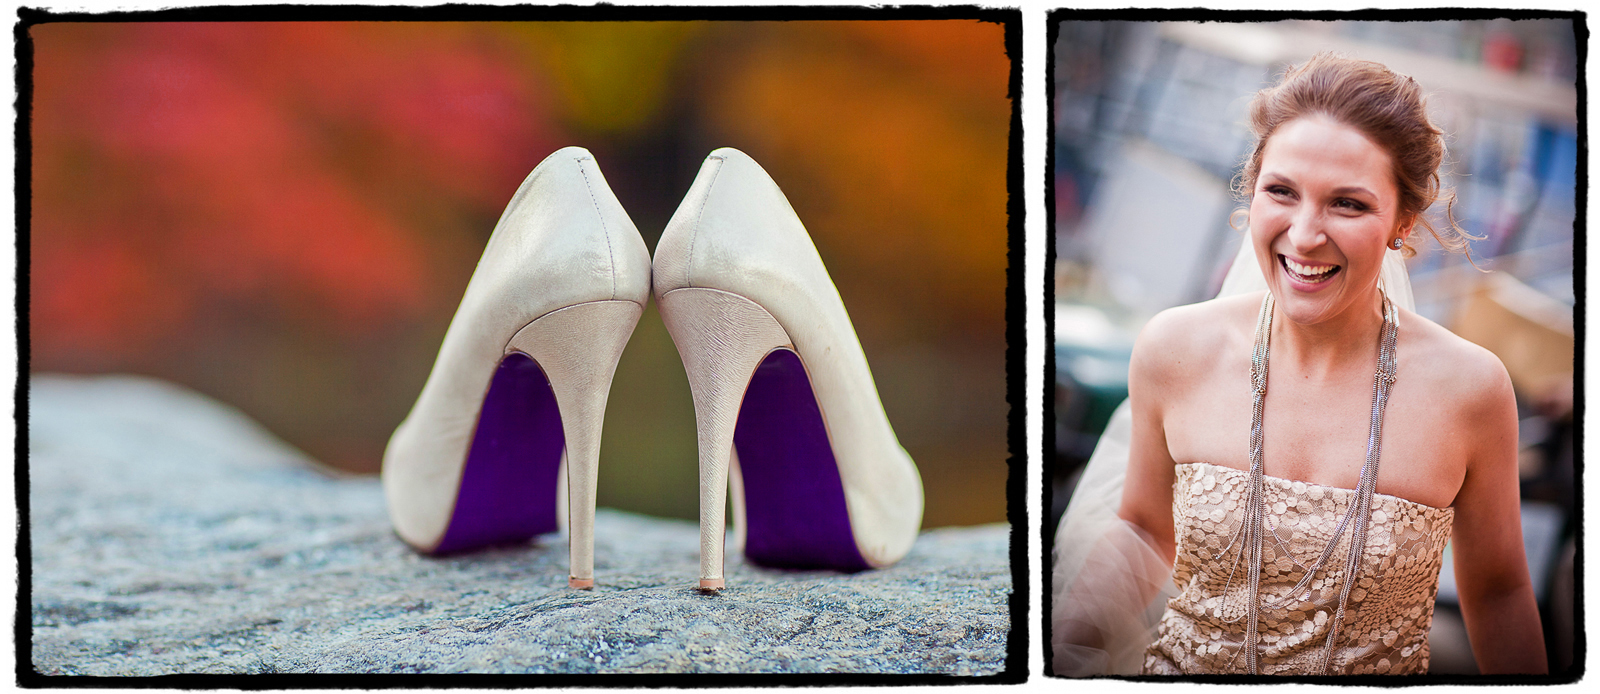 beautiful wedding shoes and a unique necklace were a stylish complement to the gold lace gown at this central park elopement ceremony.